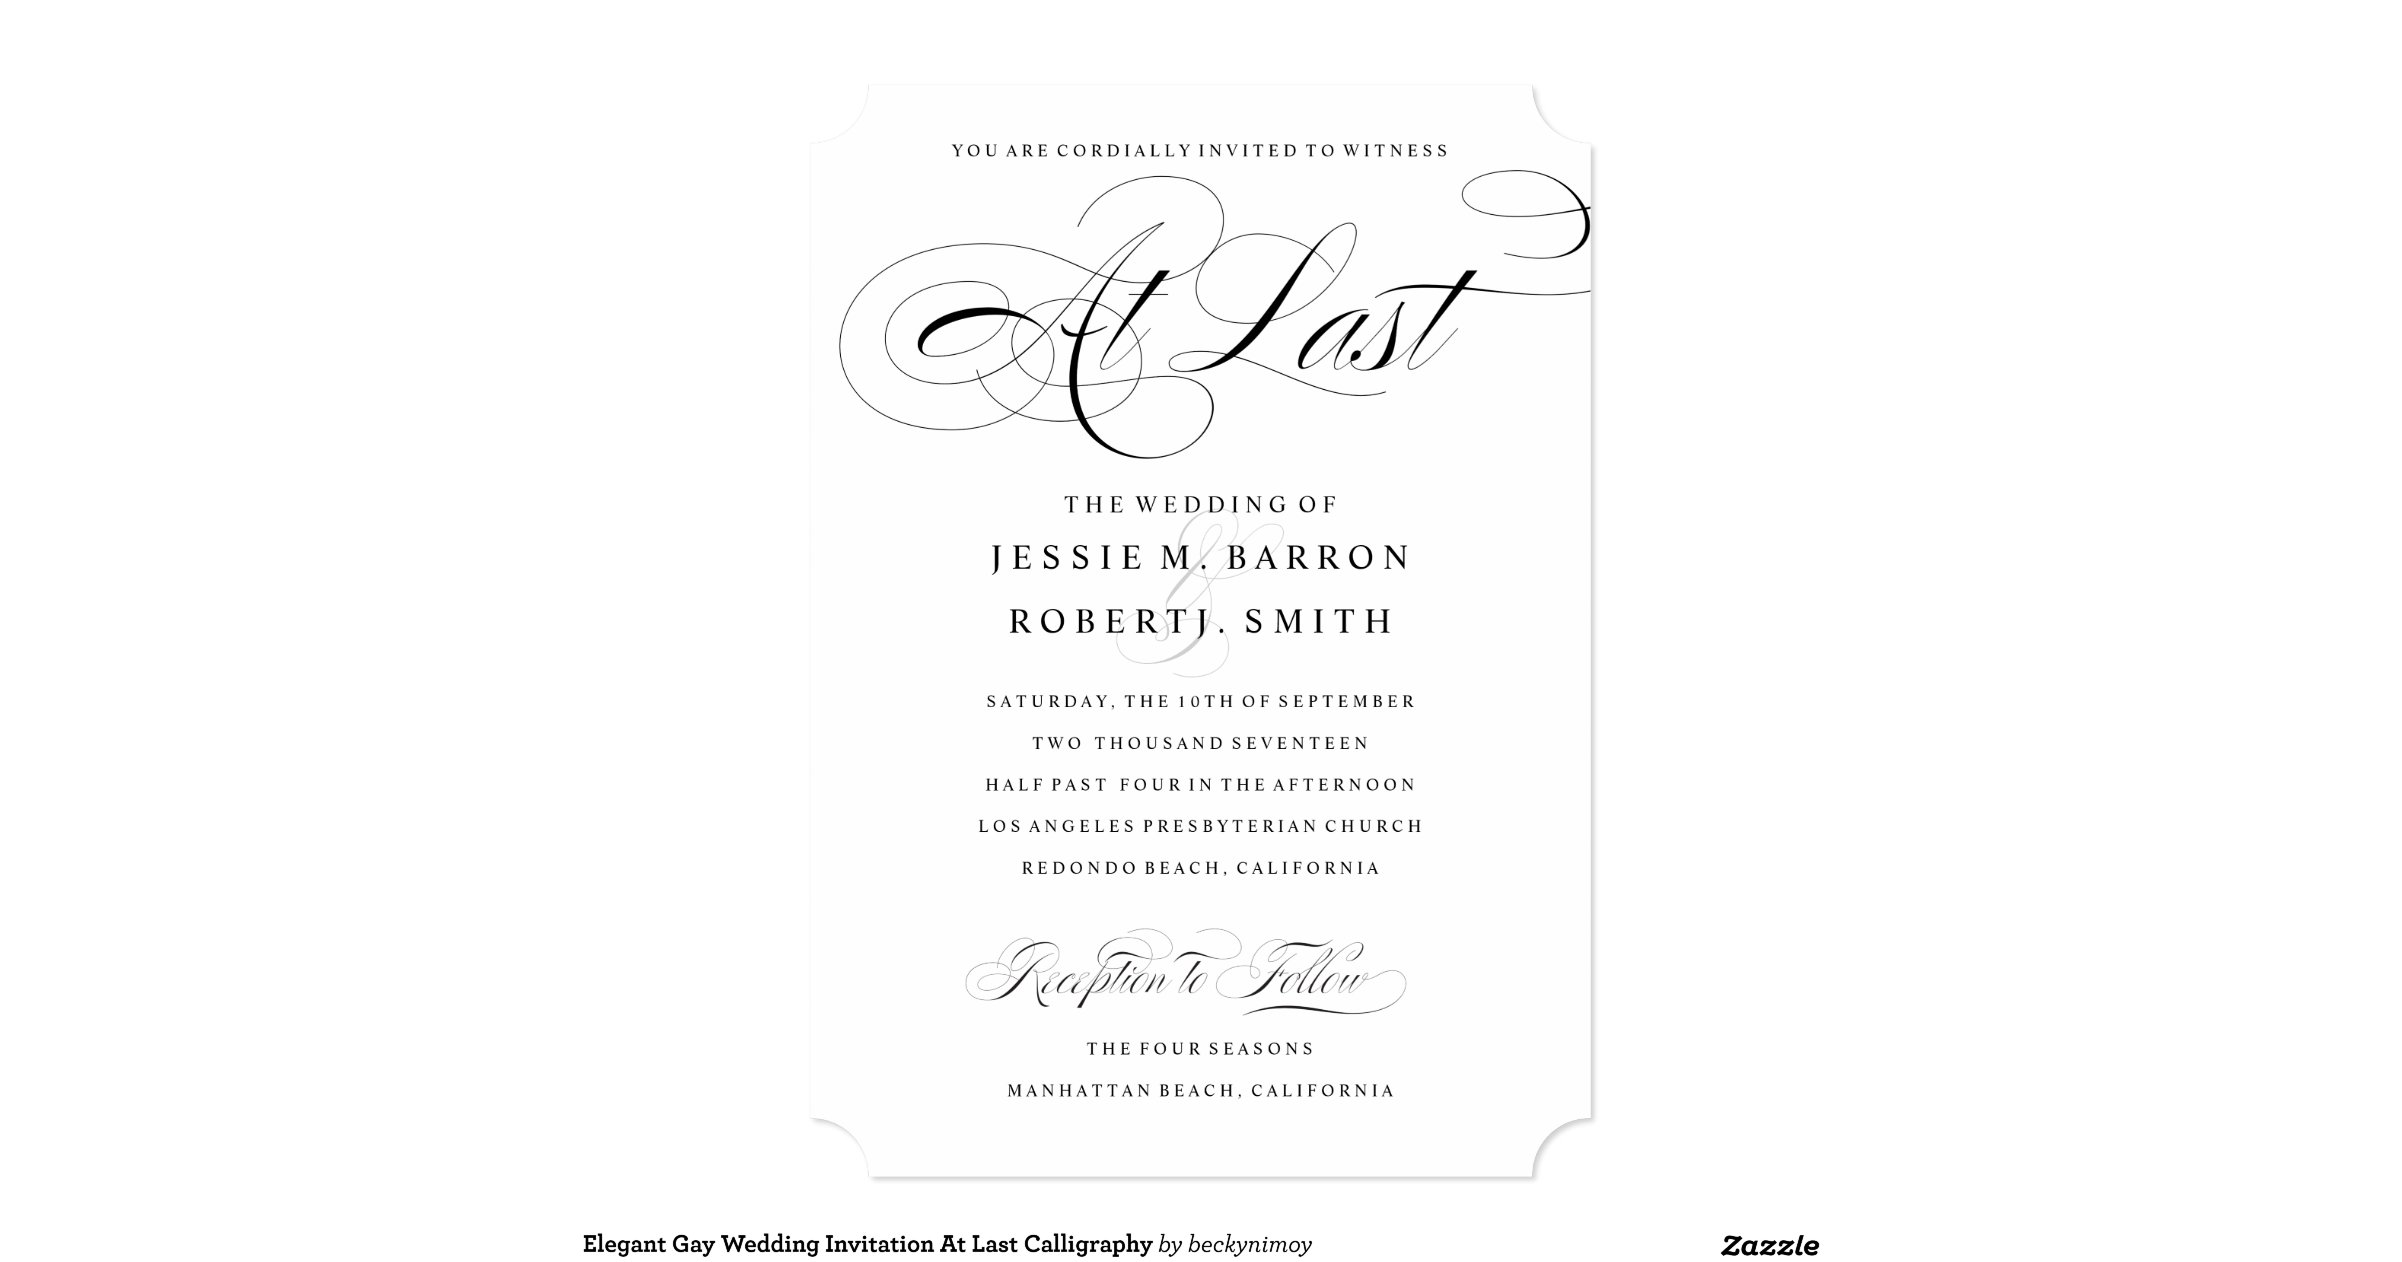 Gay Marriage Wedding Invitations: Elegant Gay Wedding Invitation At Last Calligraphy